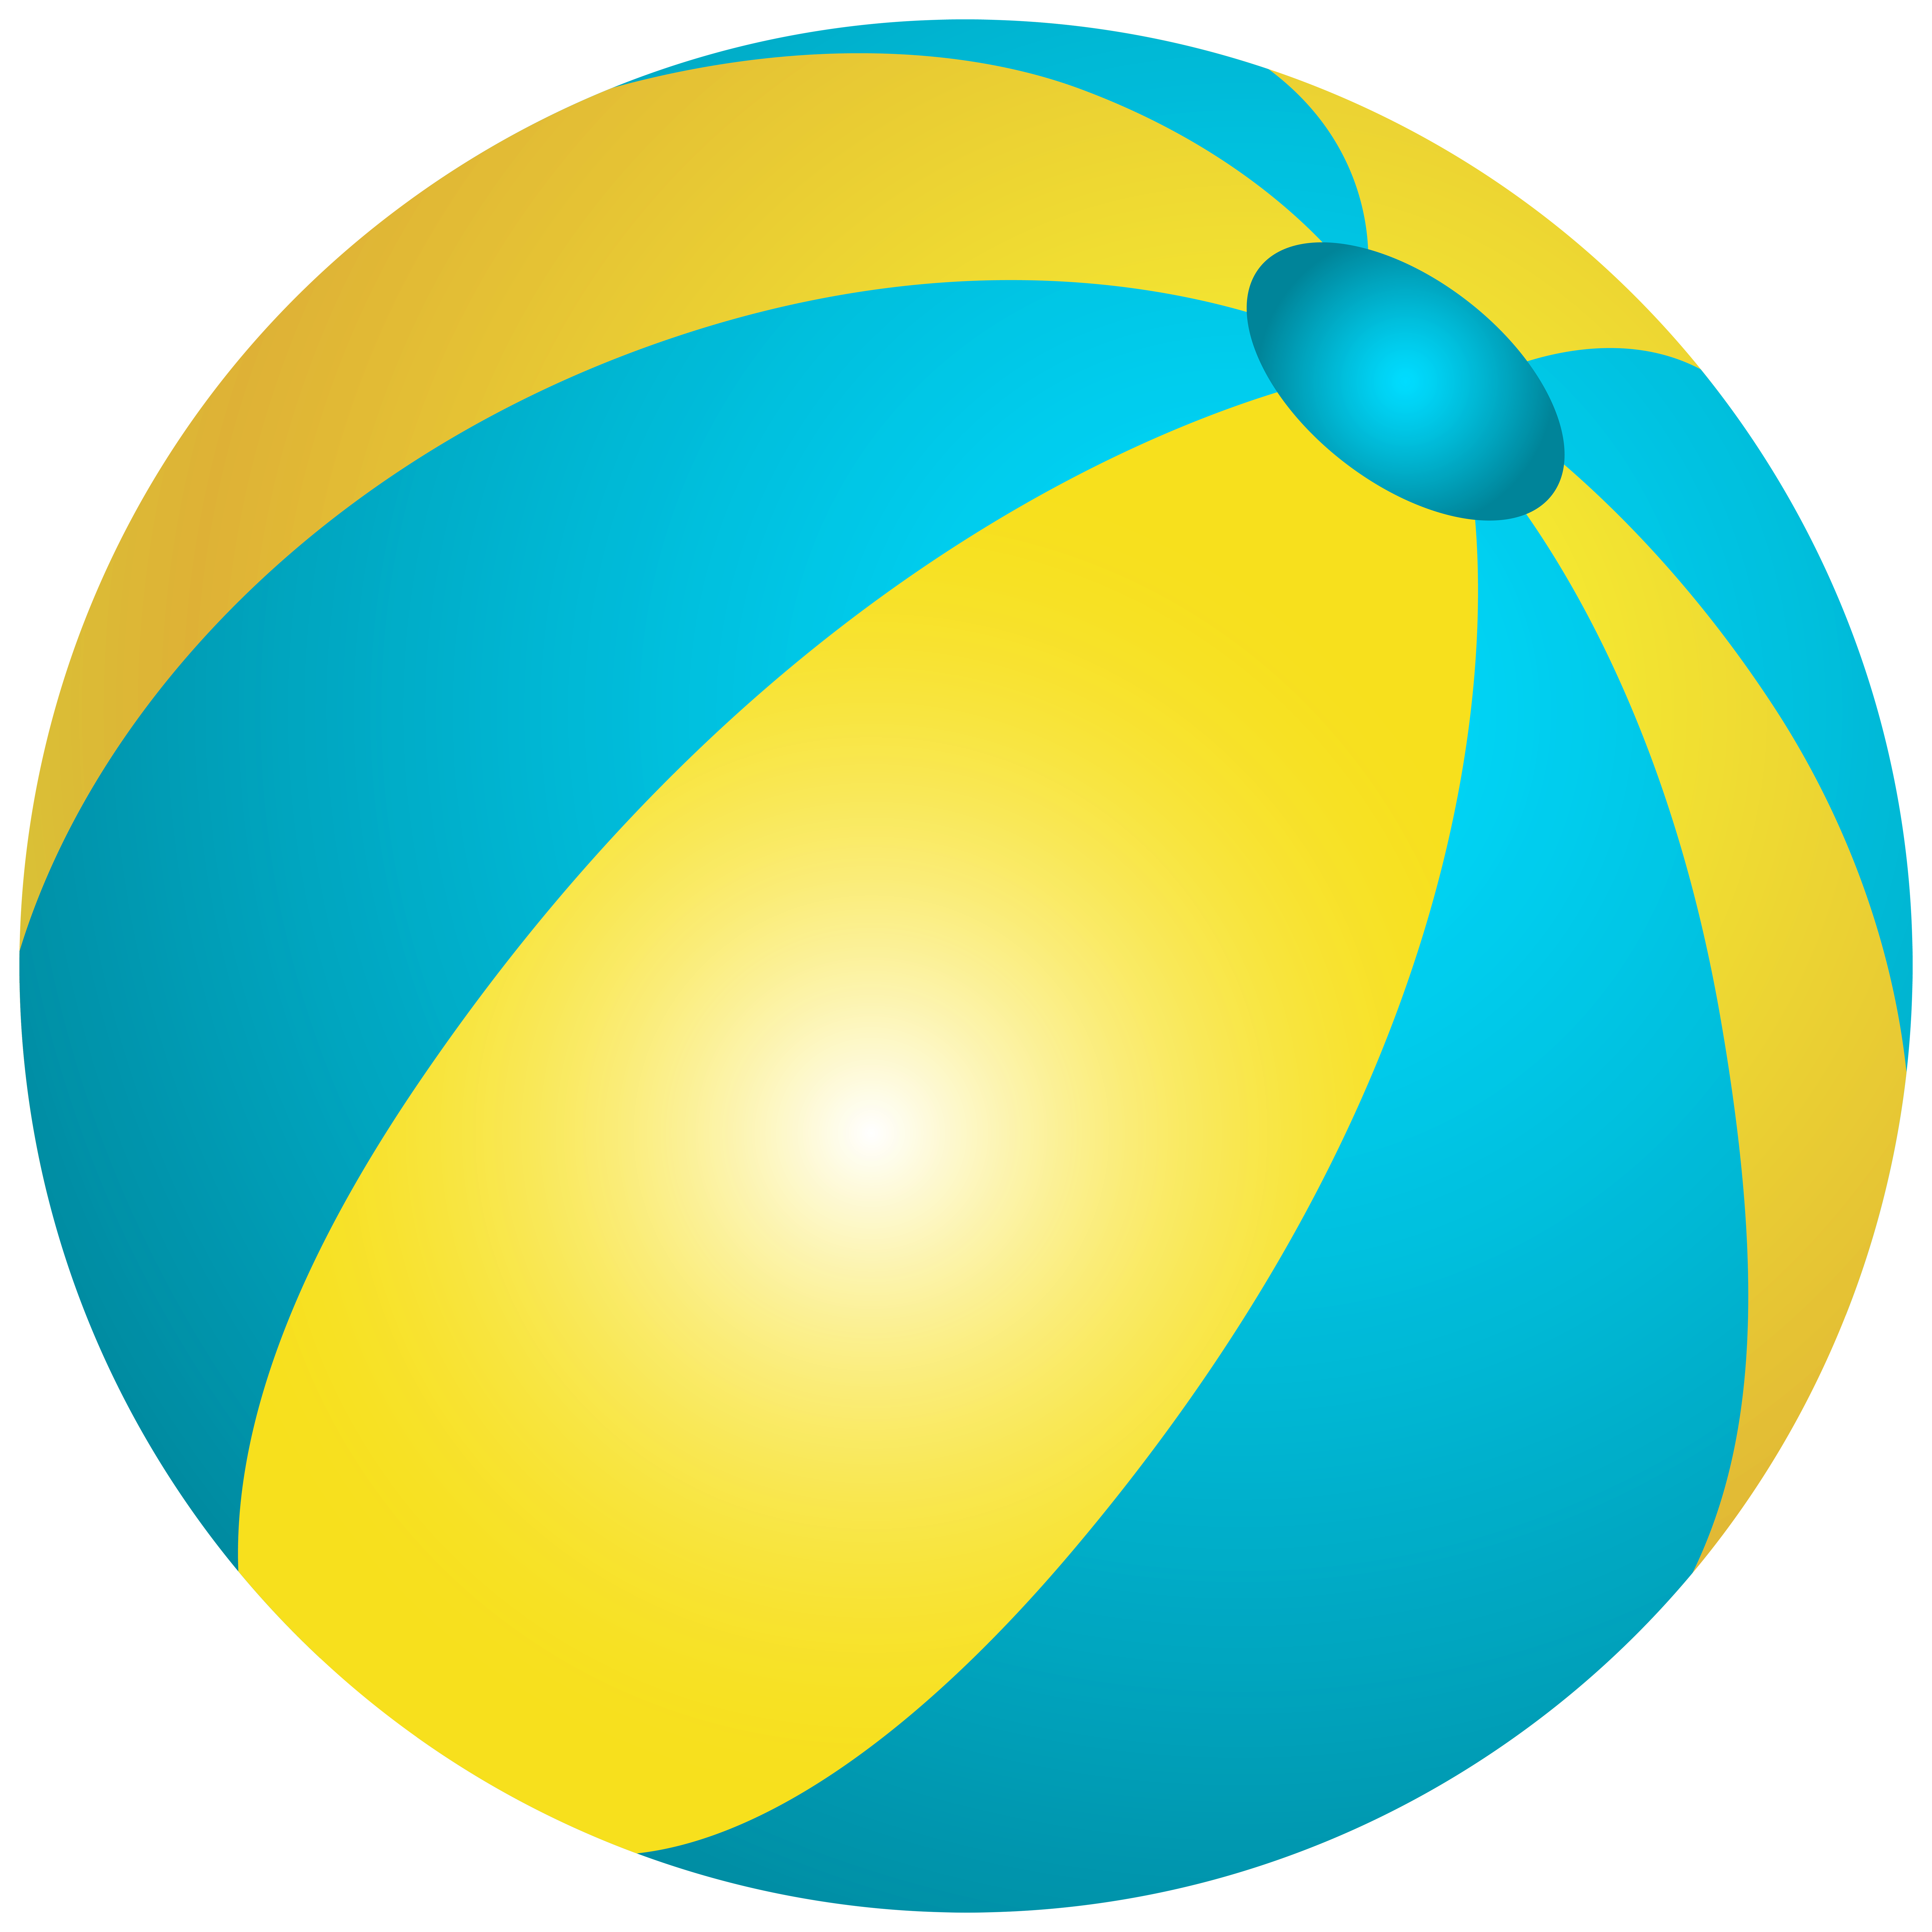 Beachball clipart equipment. Beach ball clip art